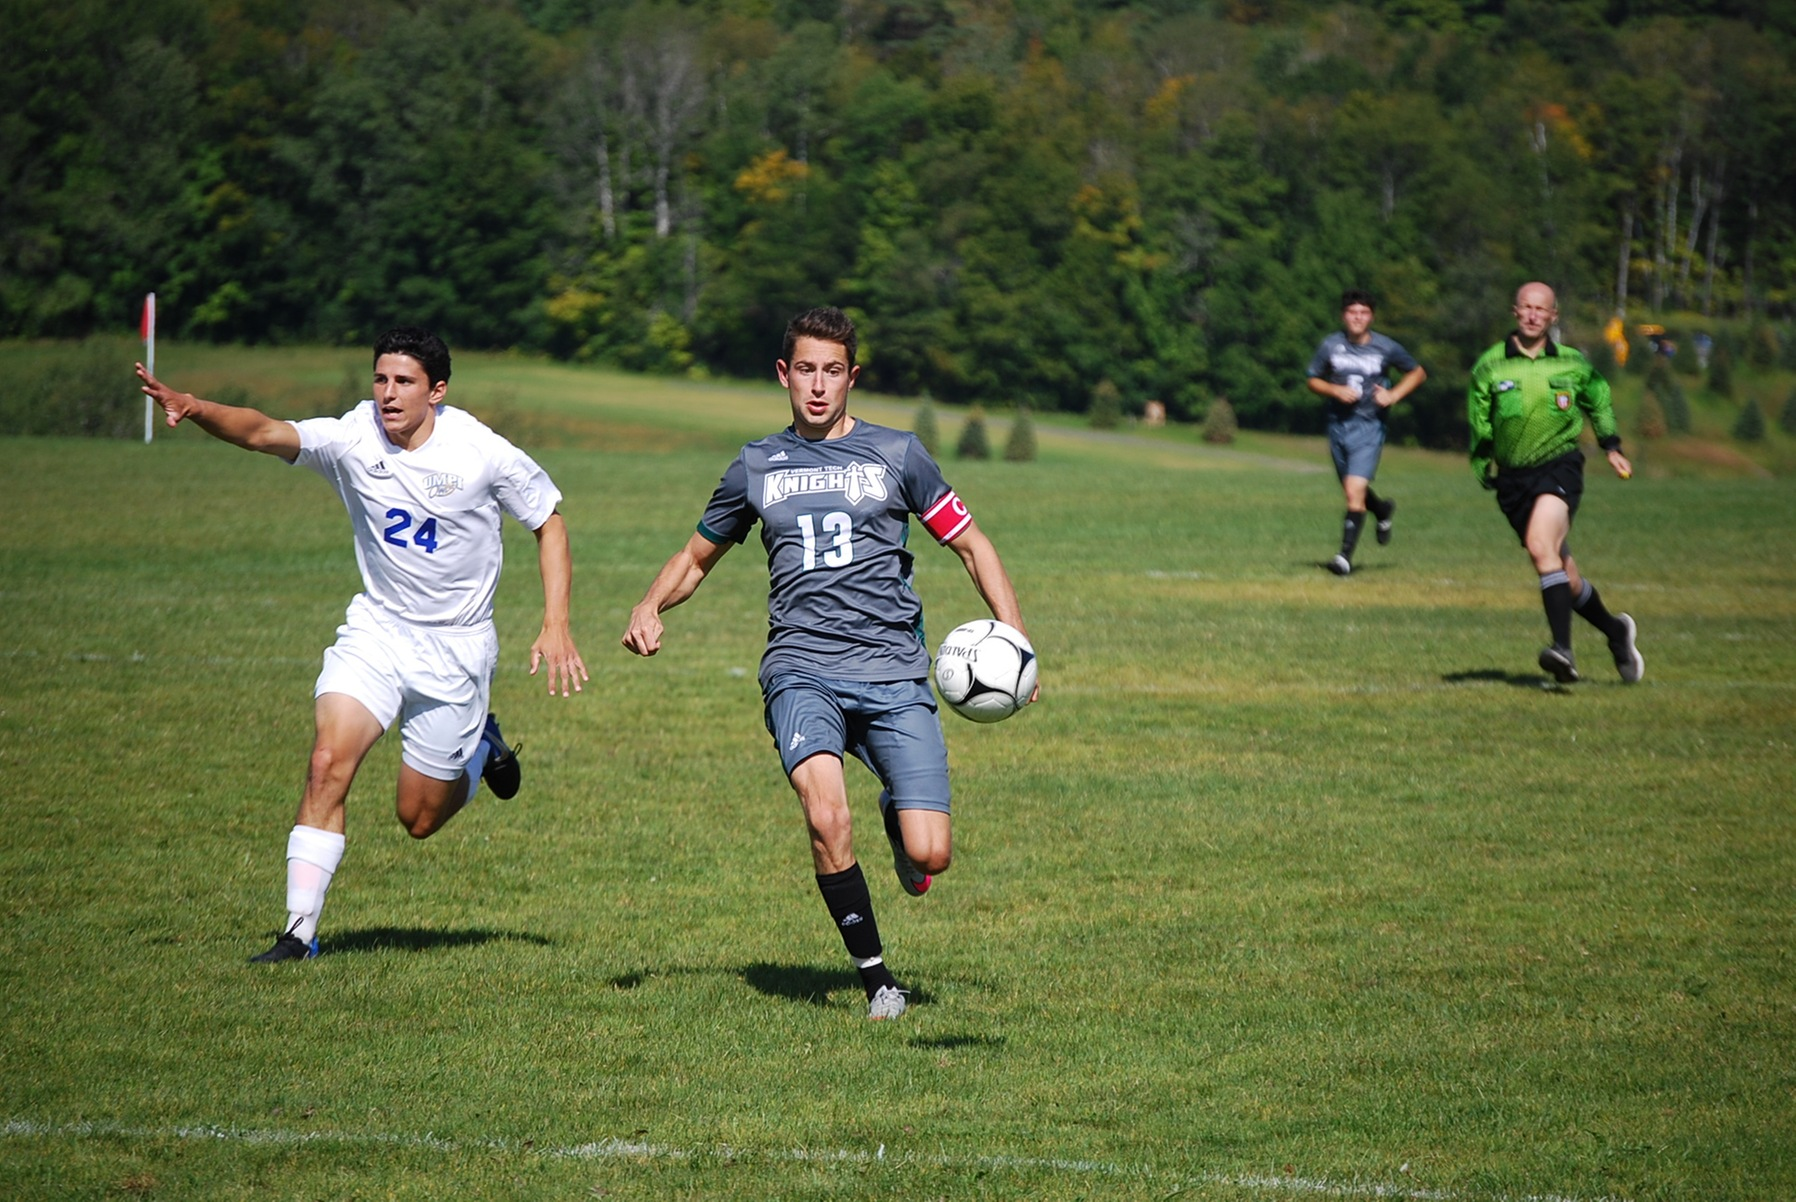 Men's Soccer finishes with a solid win over UMPI in their home opener